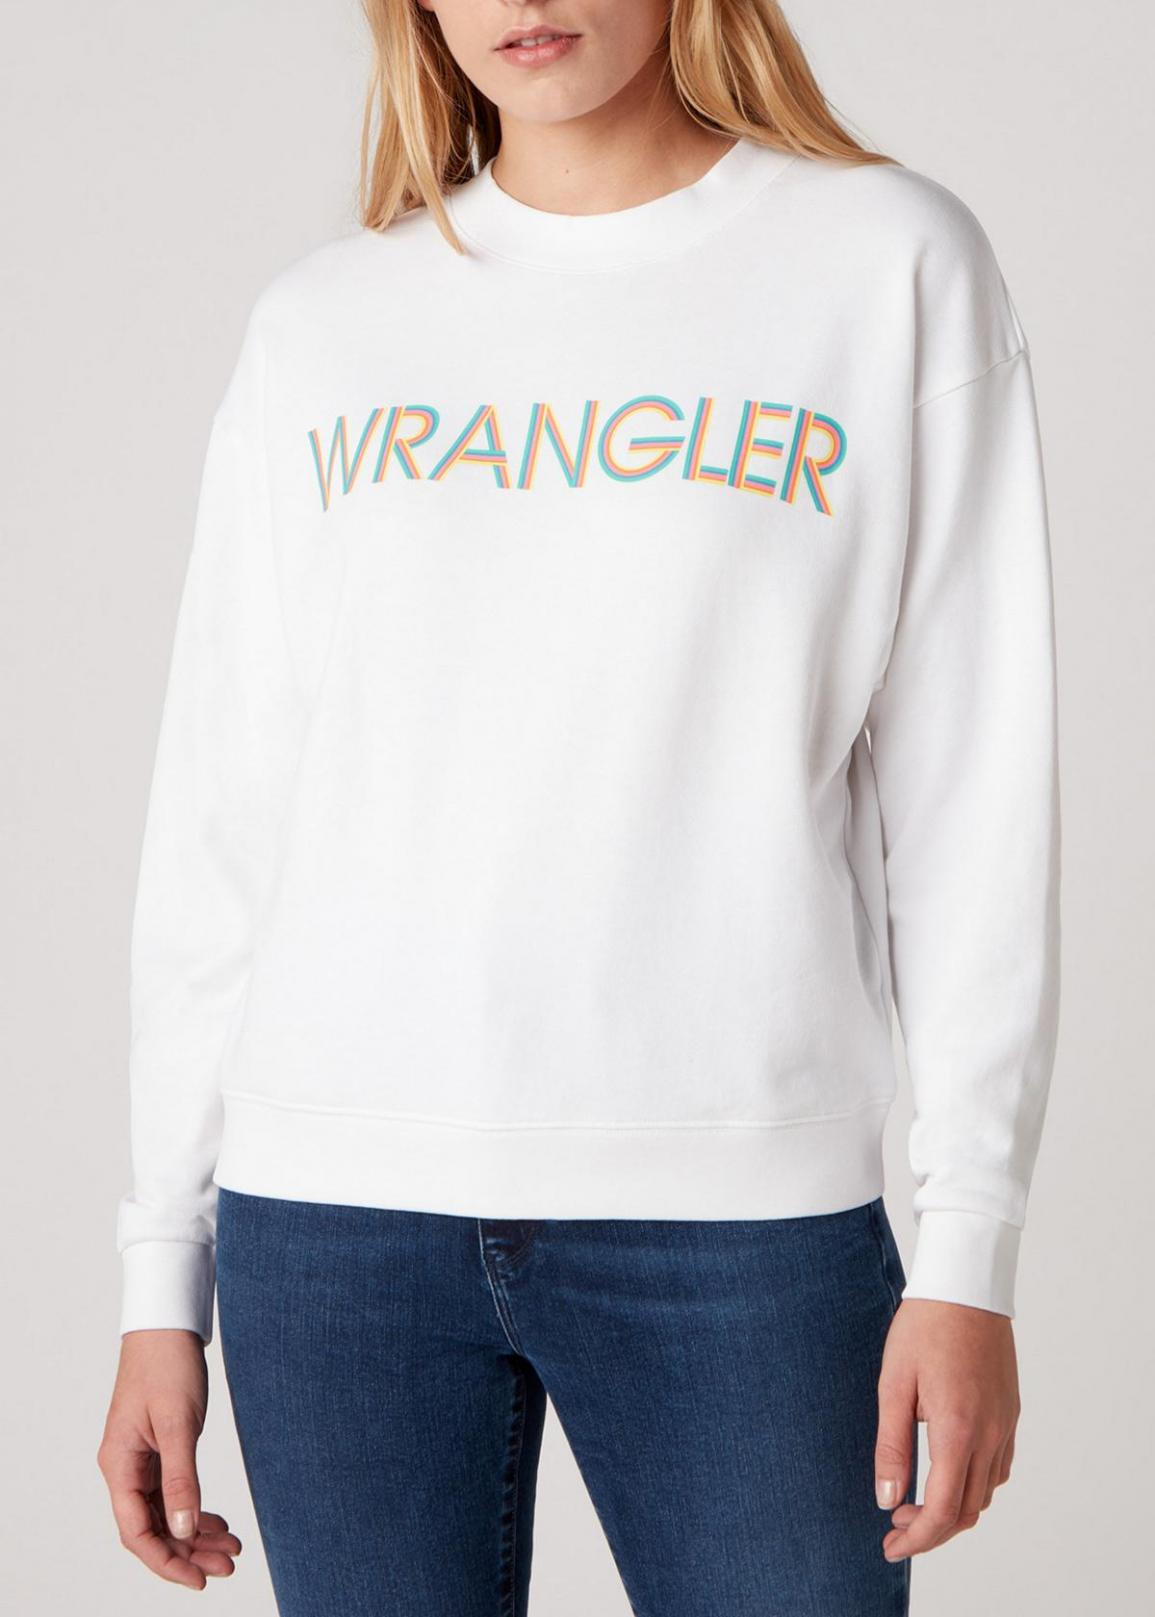 Wrangler® Retro Logo Sweater - White